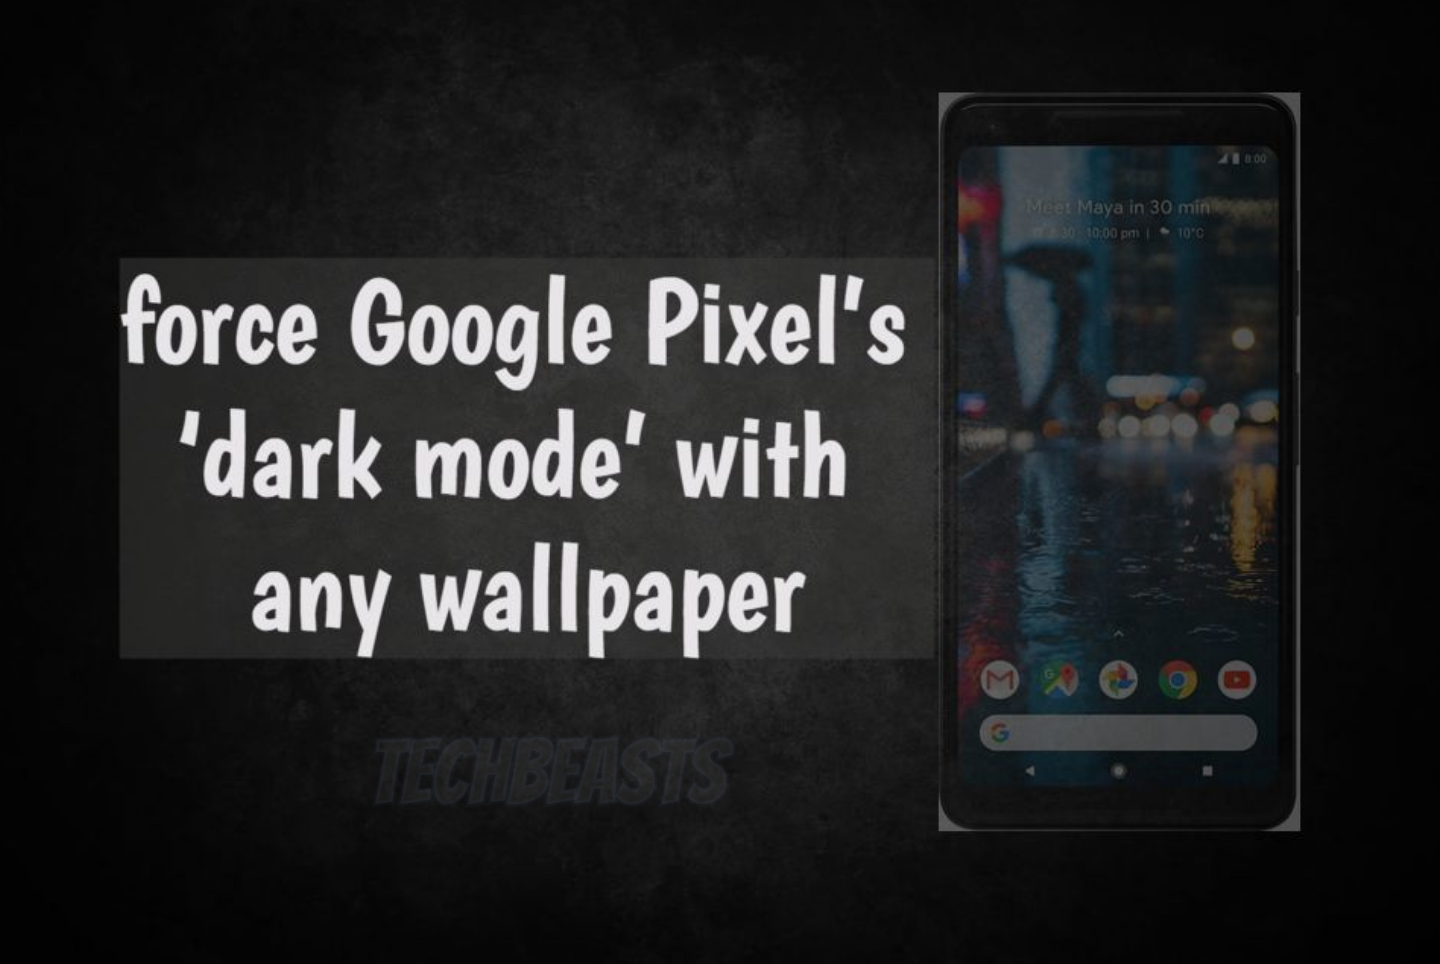 force Google Pixel's 'dark mode' with any wallpaper